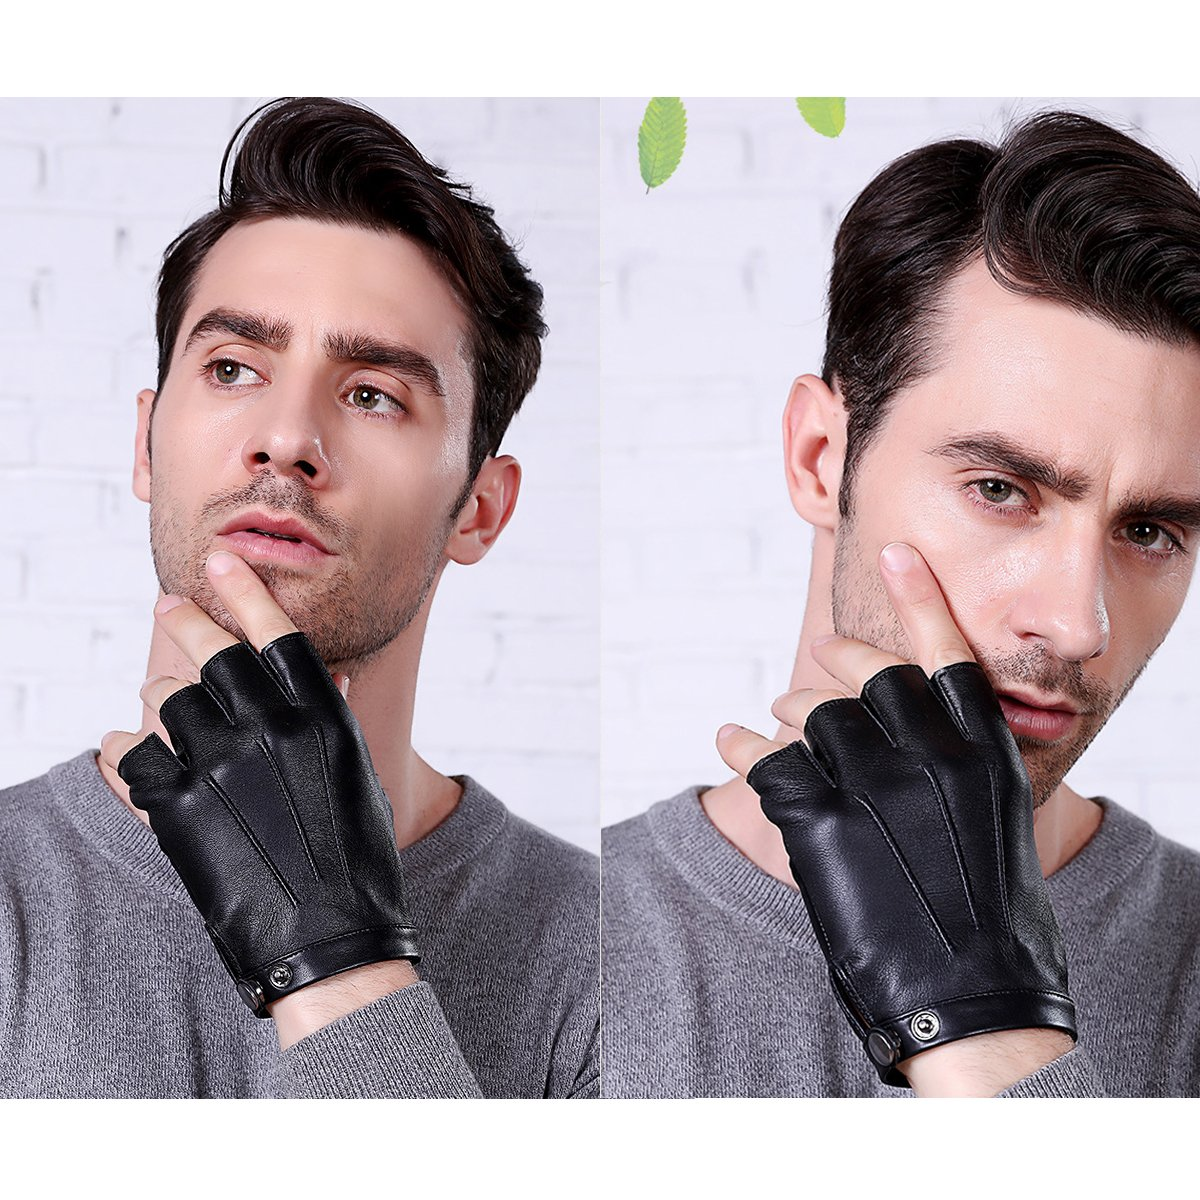 Fingerless Gloves PU Leather Gloves Touchscreen Texting Dress Driving Moto Glove for Men Women Teens (L) by gloveslove (Image #5)